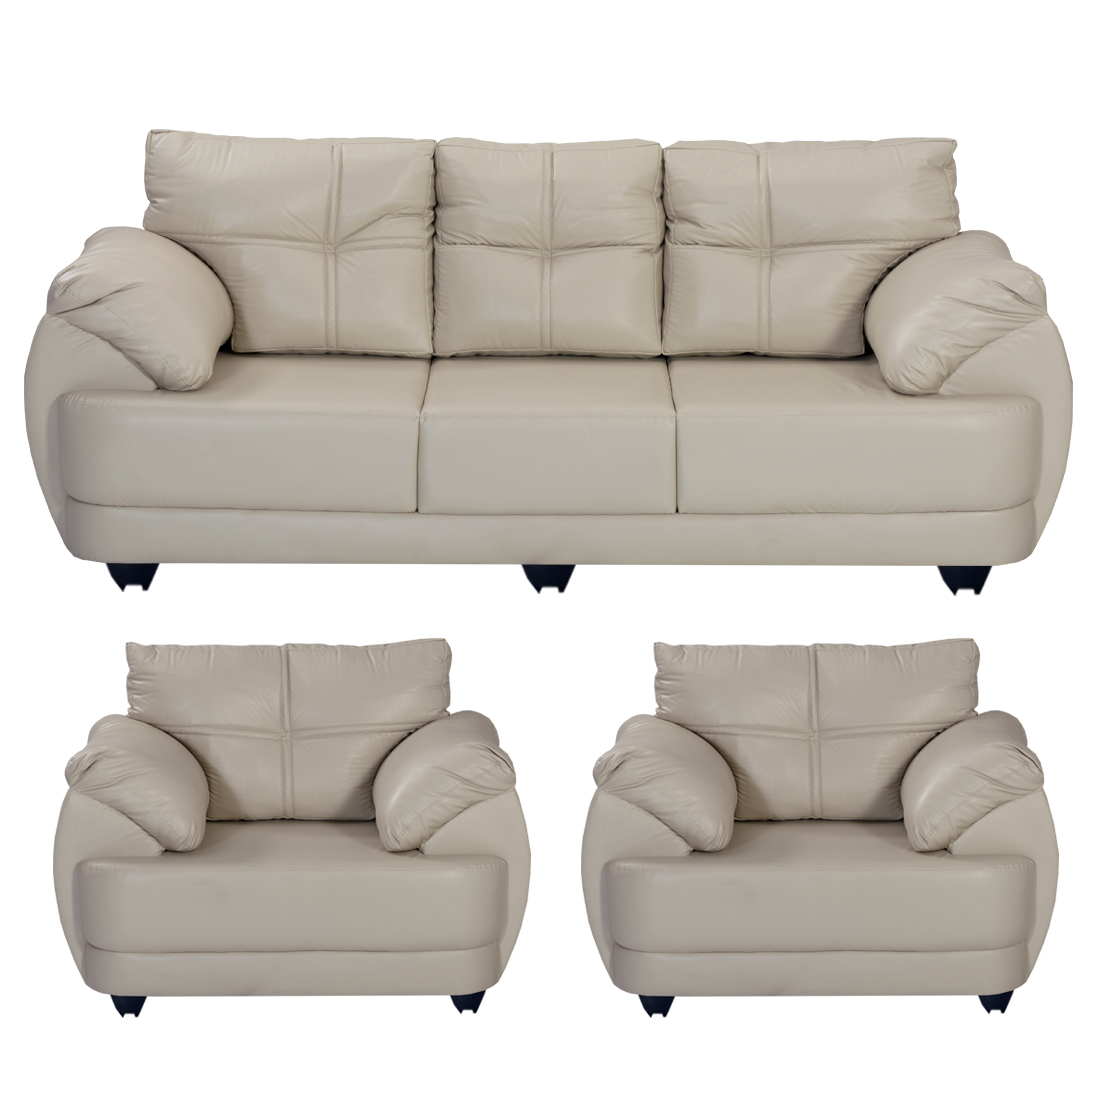 Miraculous Bharat Lifestyle Austin Leatherette 3 1 1 Cream Sofa Set Cjindustries Chair Design For Home Cjindustriesco